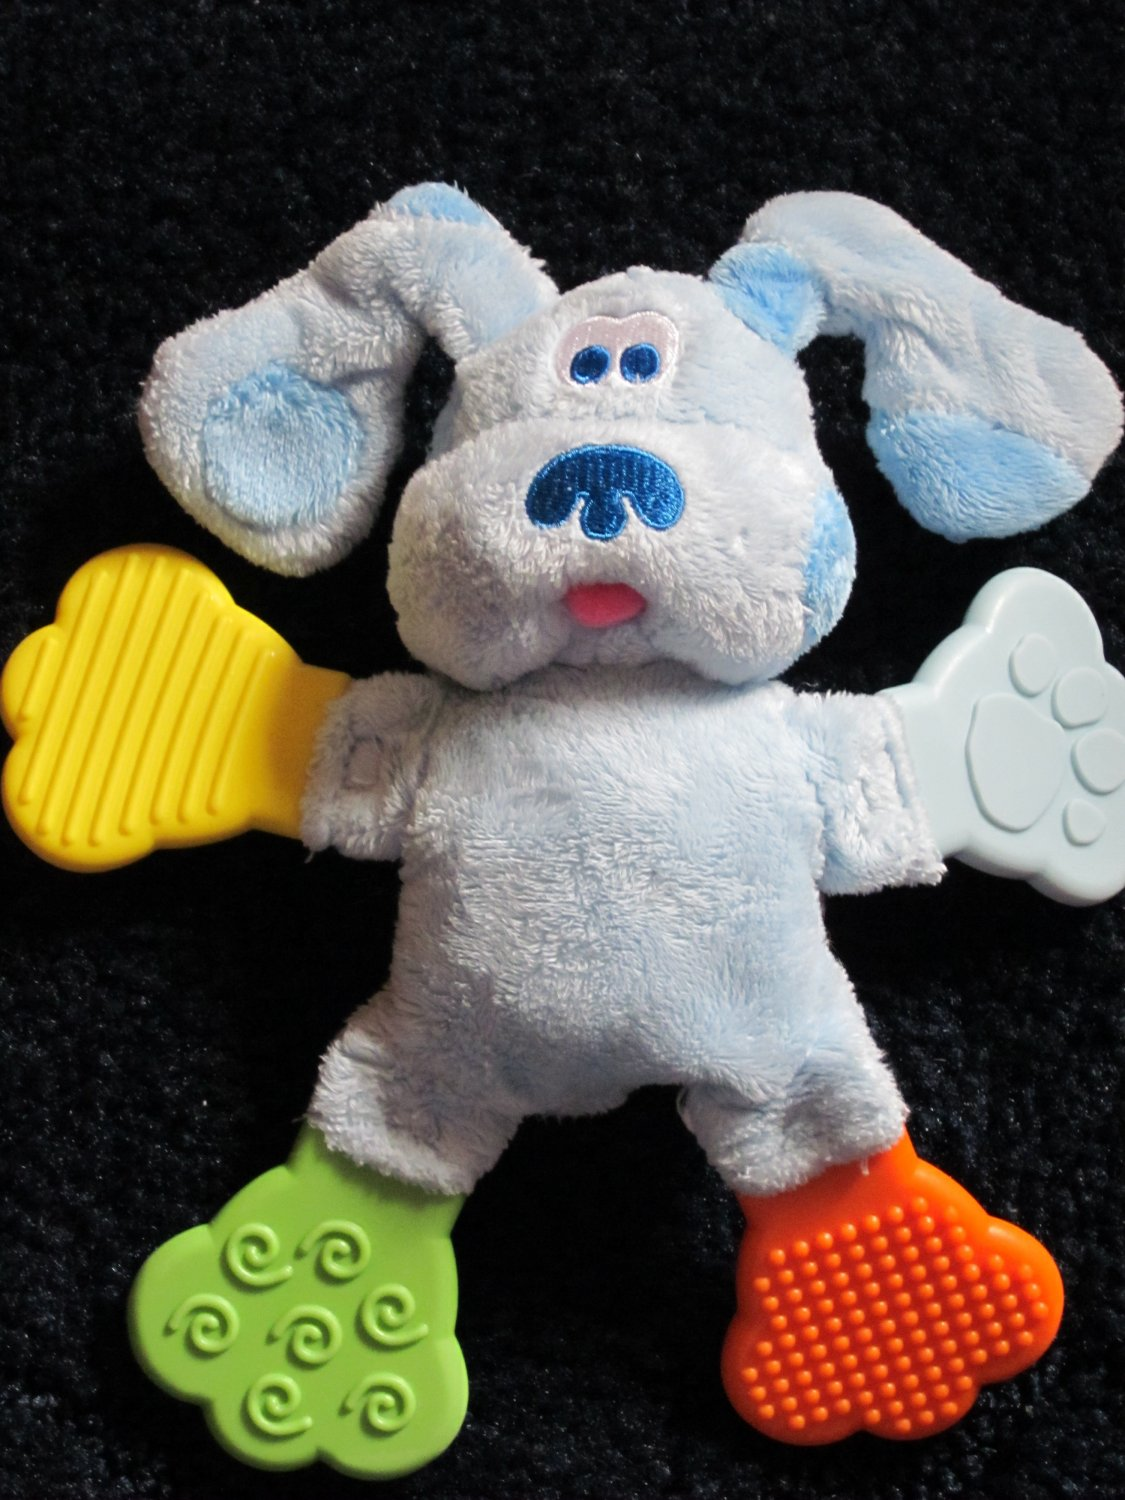 Blues Clues Plush Teether Toy With Textures